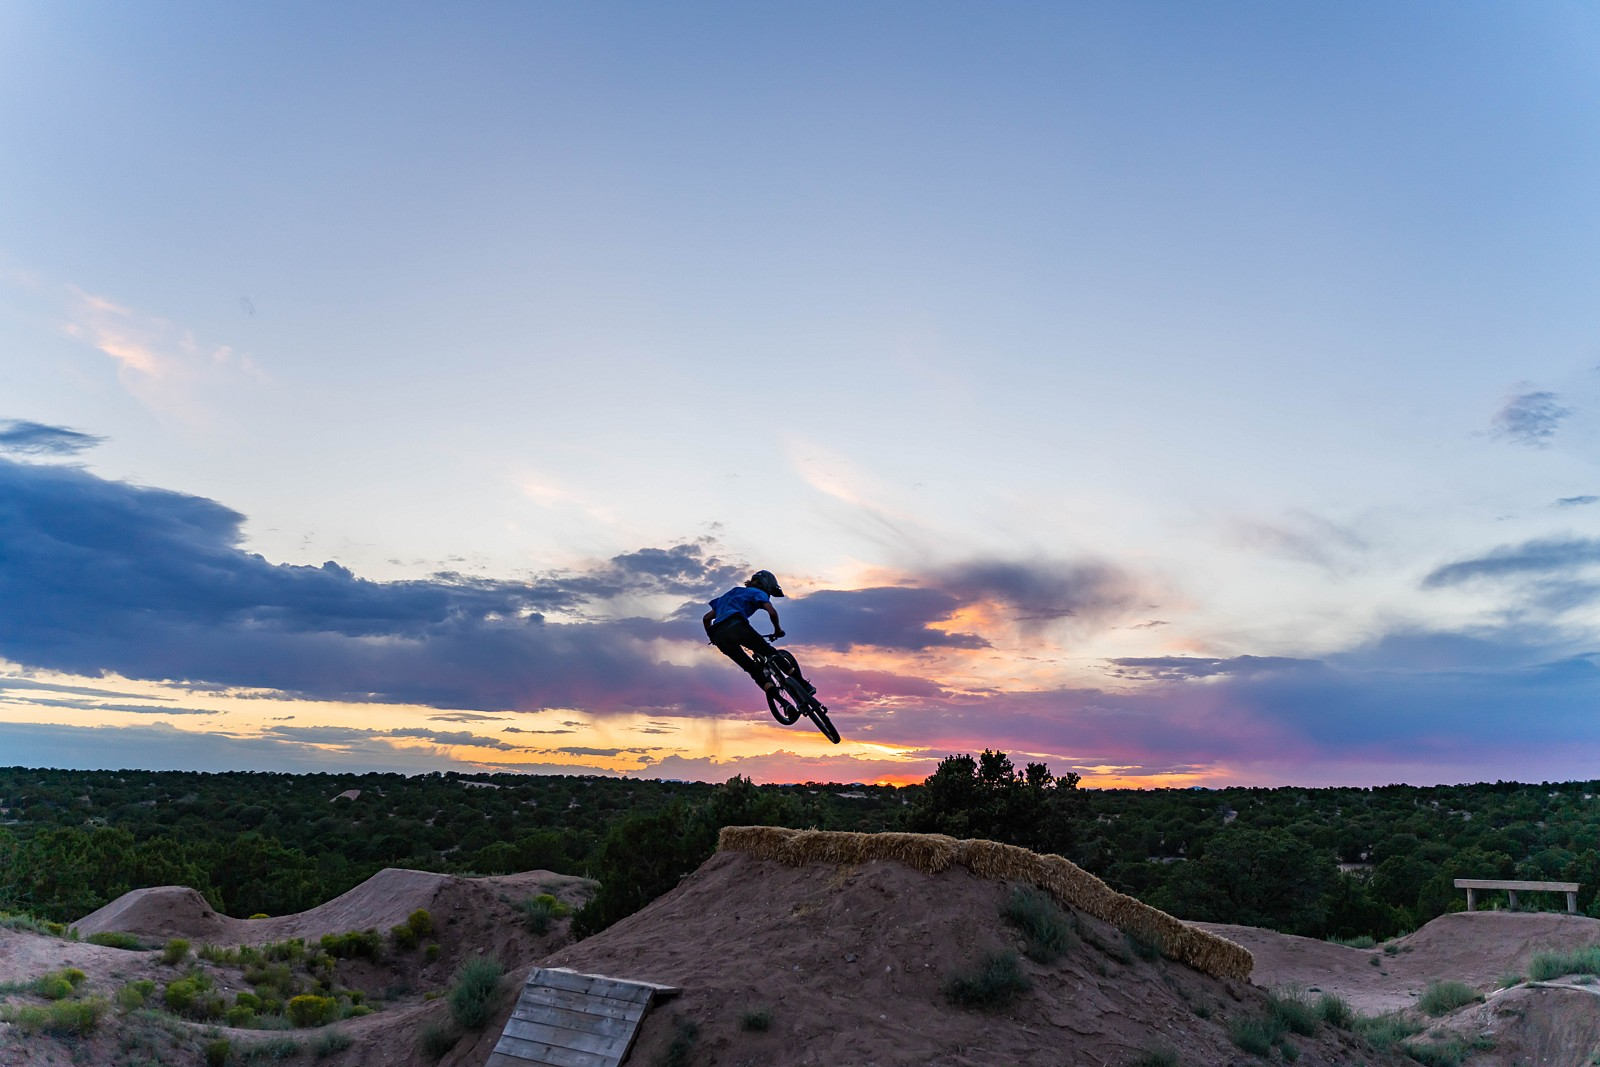 Henry whippin in the sunset - legpwr - Mountain Biking Pictures - Vital MTB